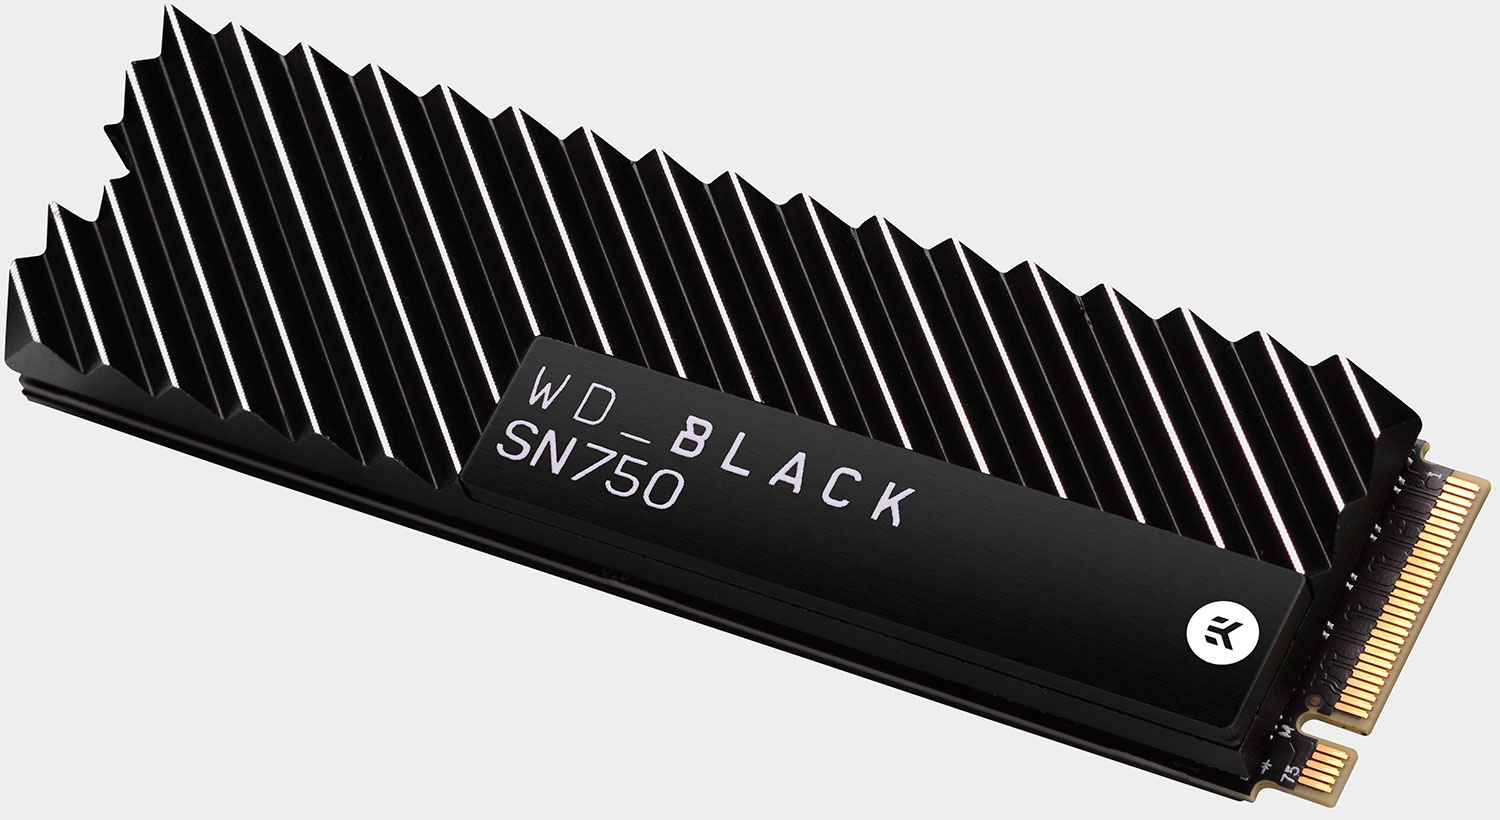 WD upgraded its Black SSD with a heatsink to prevent throttling in games